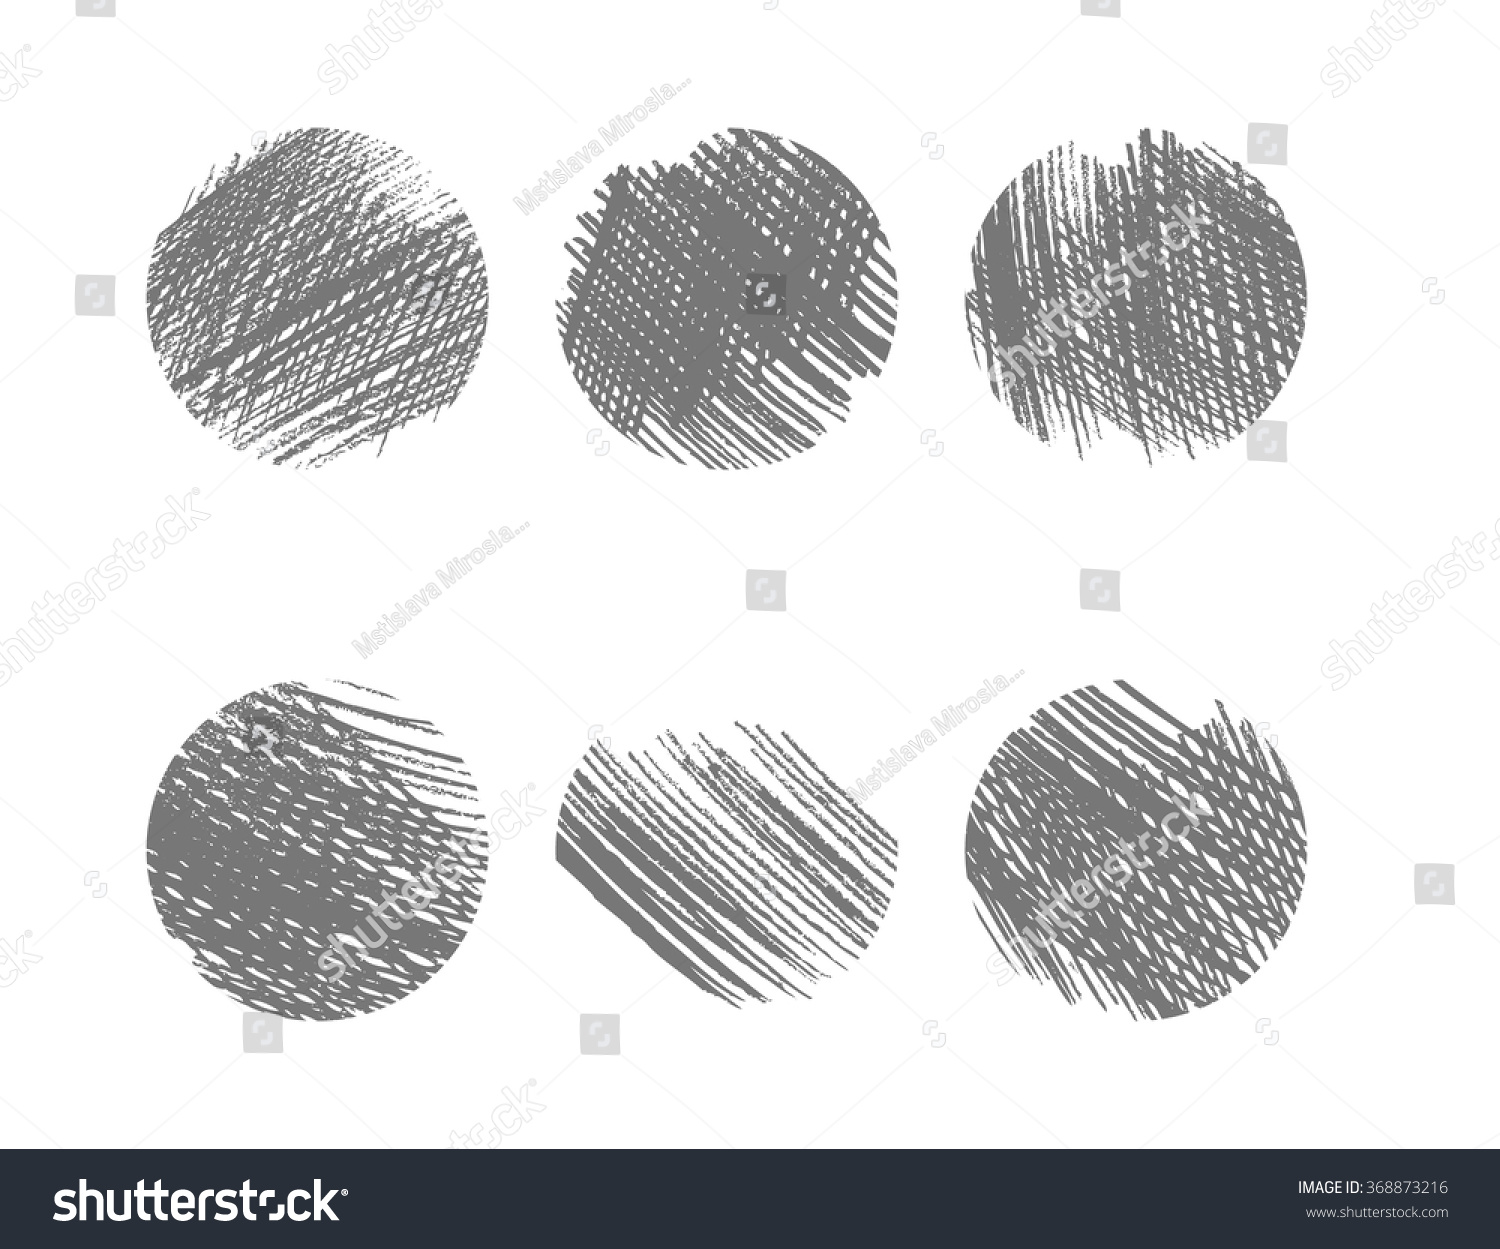 Drawing Lines In Processing : Online image photo editor shutterstock